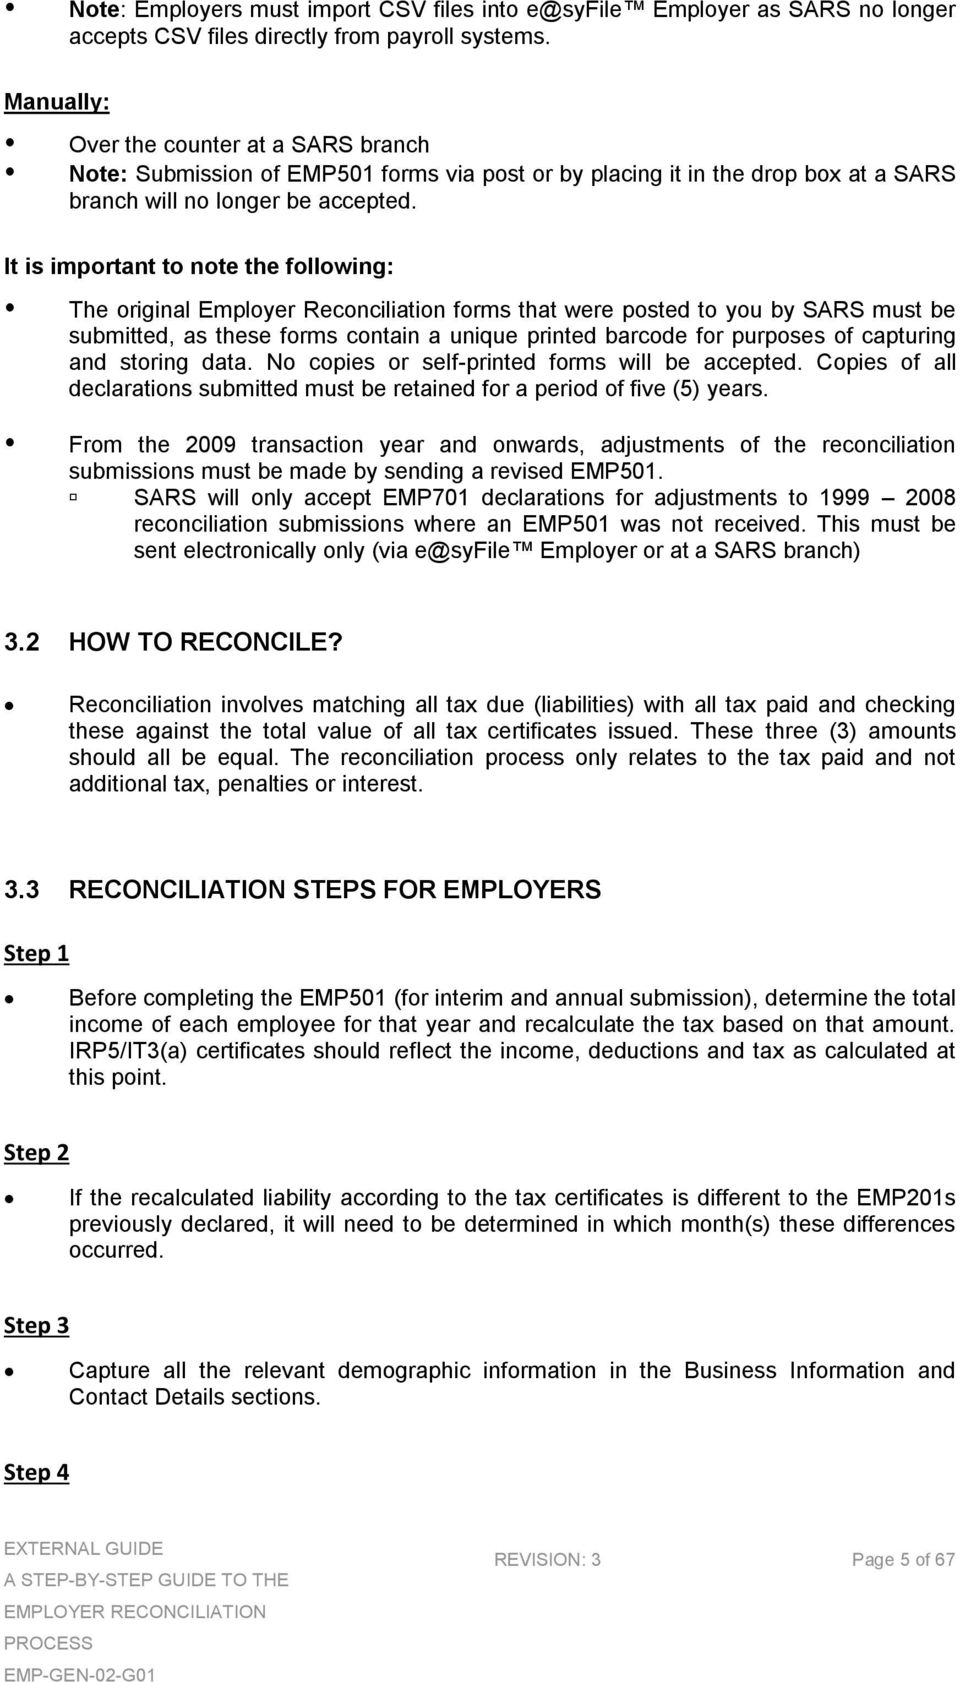 It is important to note the following: The original Employer Reconciliation forms that were posted to you by SARS must be submitted, as these forms contain a unique printed barcode for purposes of